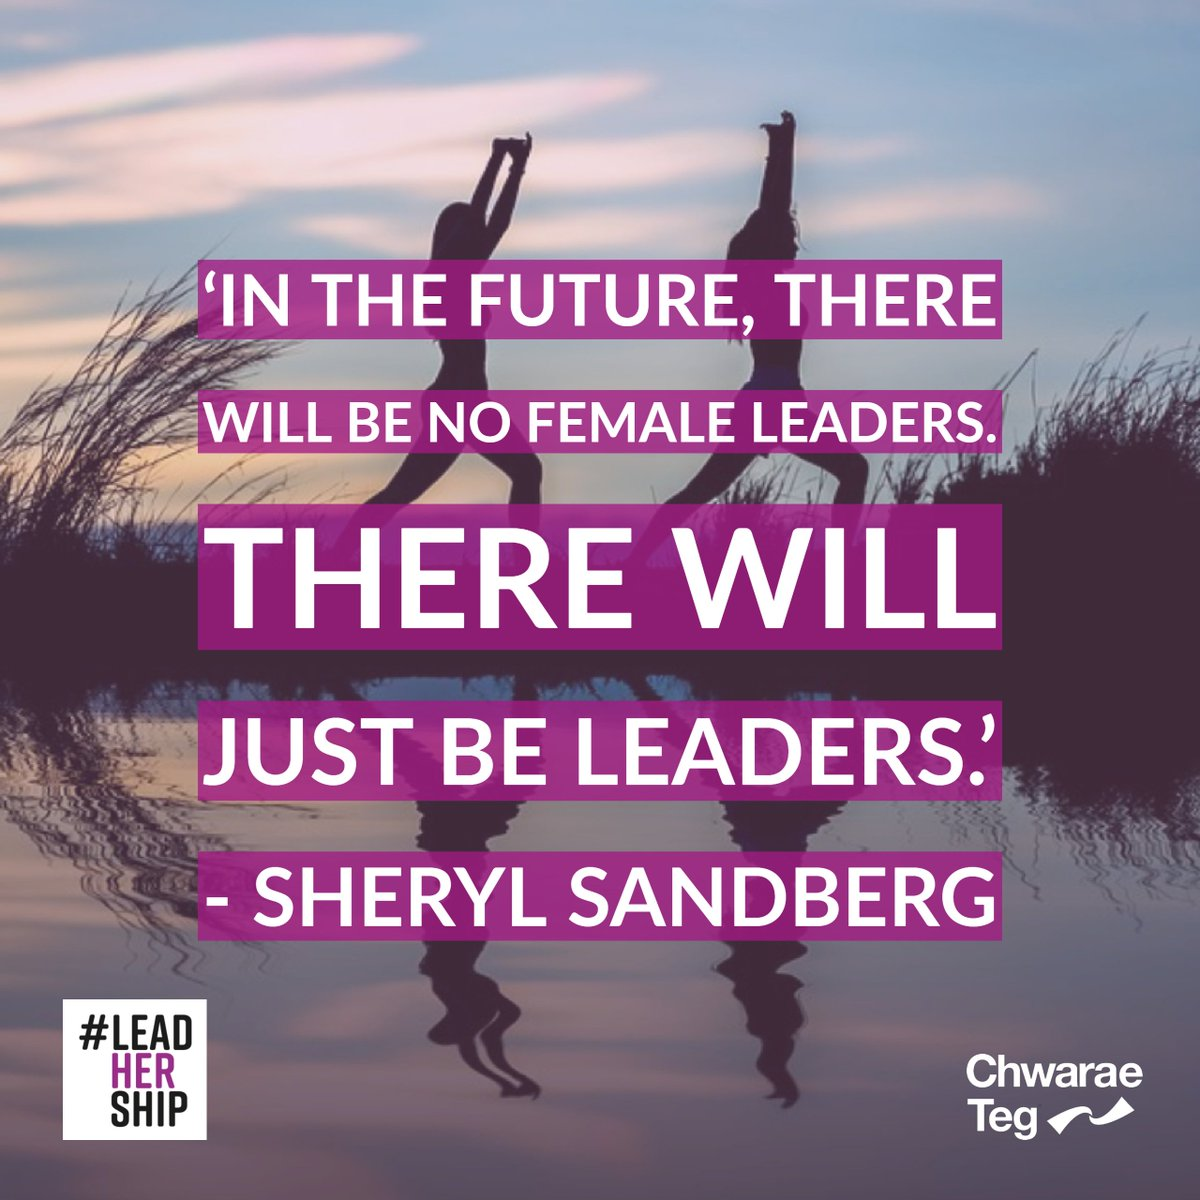 We&#39;ve got a once-in-a-lifetime opportunity for women aged 16-25 looking to get into politics...  Help us inspire the next generation of female leaders!   https:// buff.ly/2BEjqFy  &nbsp;     #Wales #politics #LeadHerShip<br>http://pic.twitter.com/DOy0HBLHzv